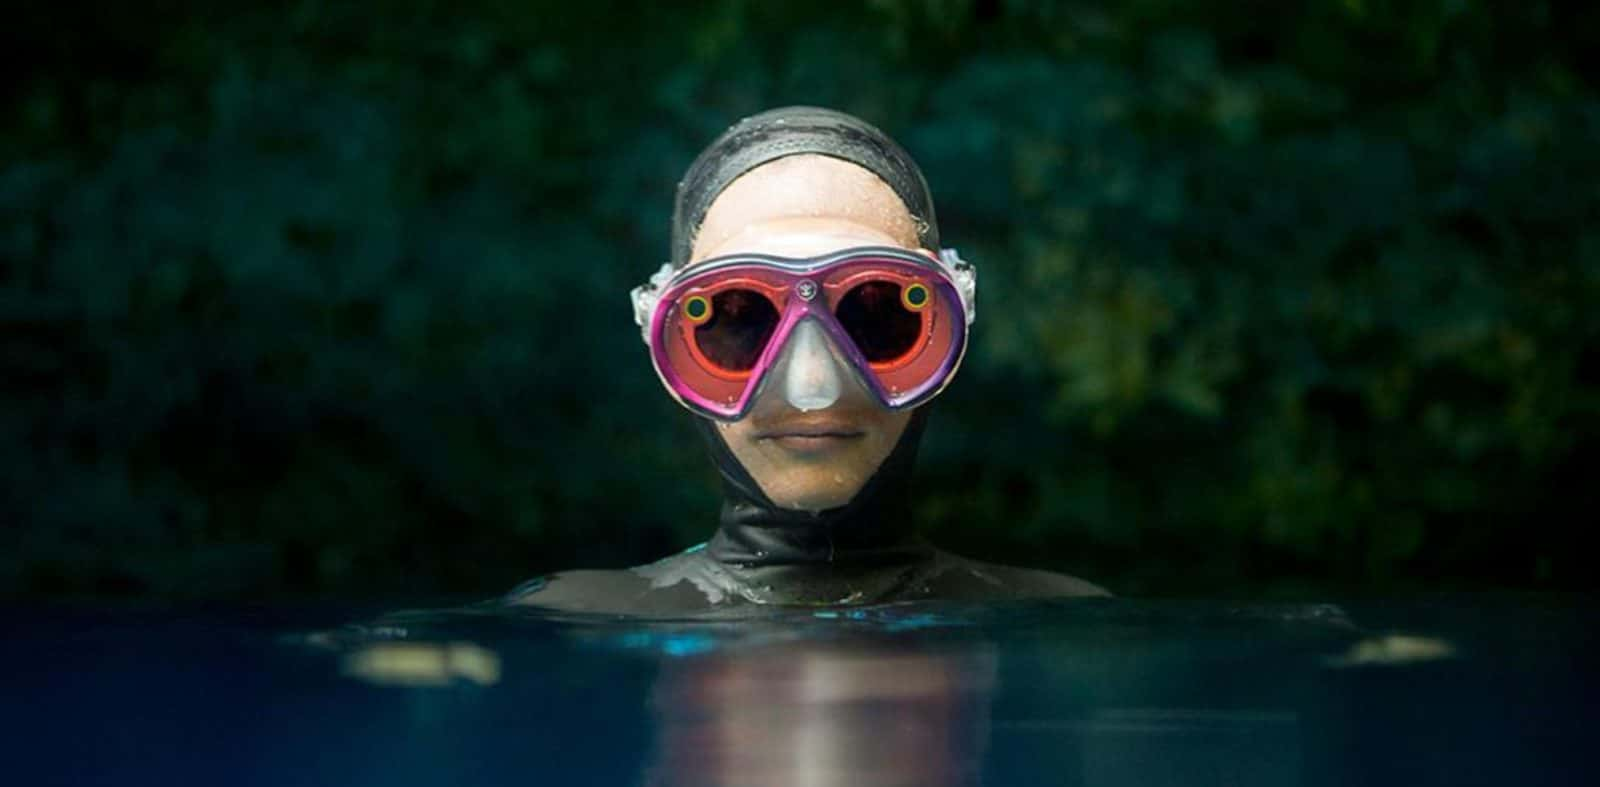 Royal Caribbean Intros Spectacles-Like Snapchat Diving Mask